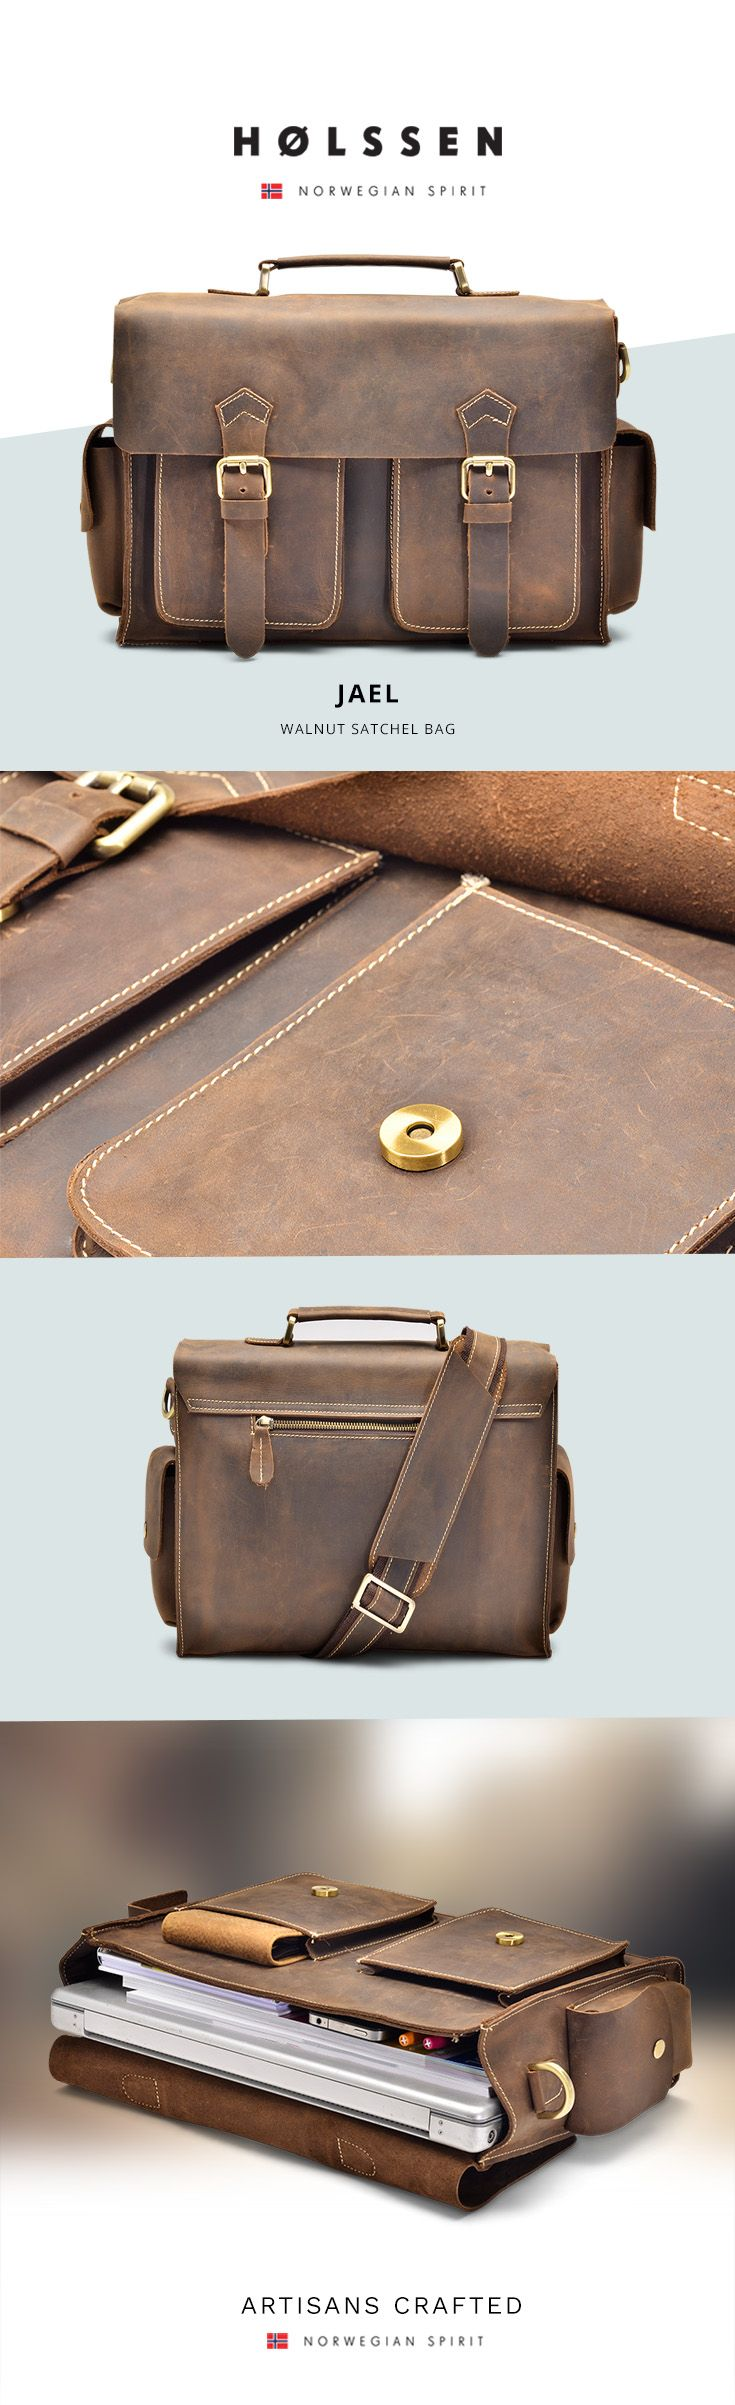 Leather satchel briefcase messenger bag perfect to carry everything you need.